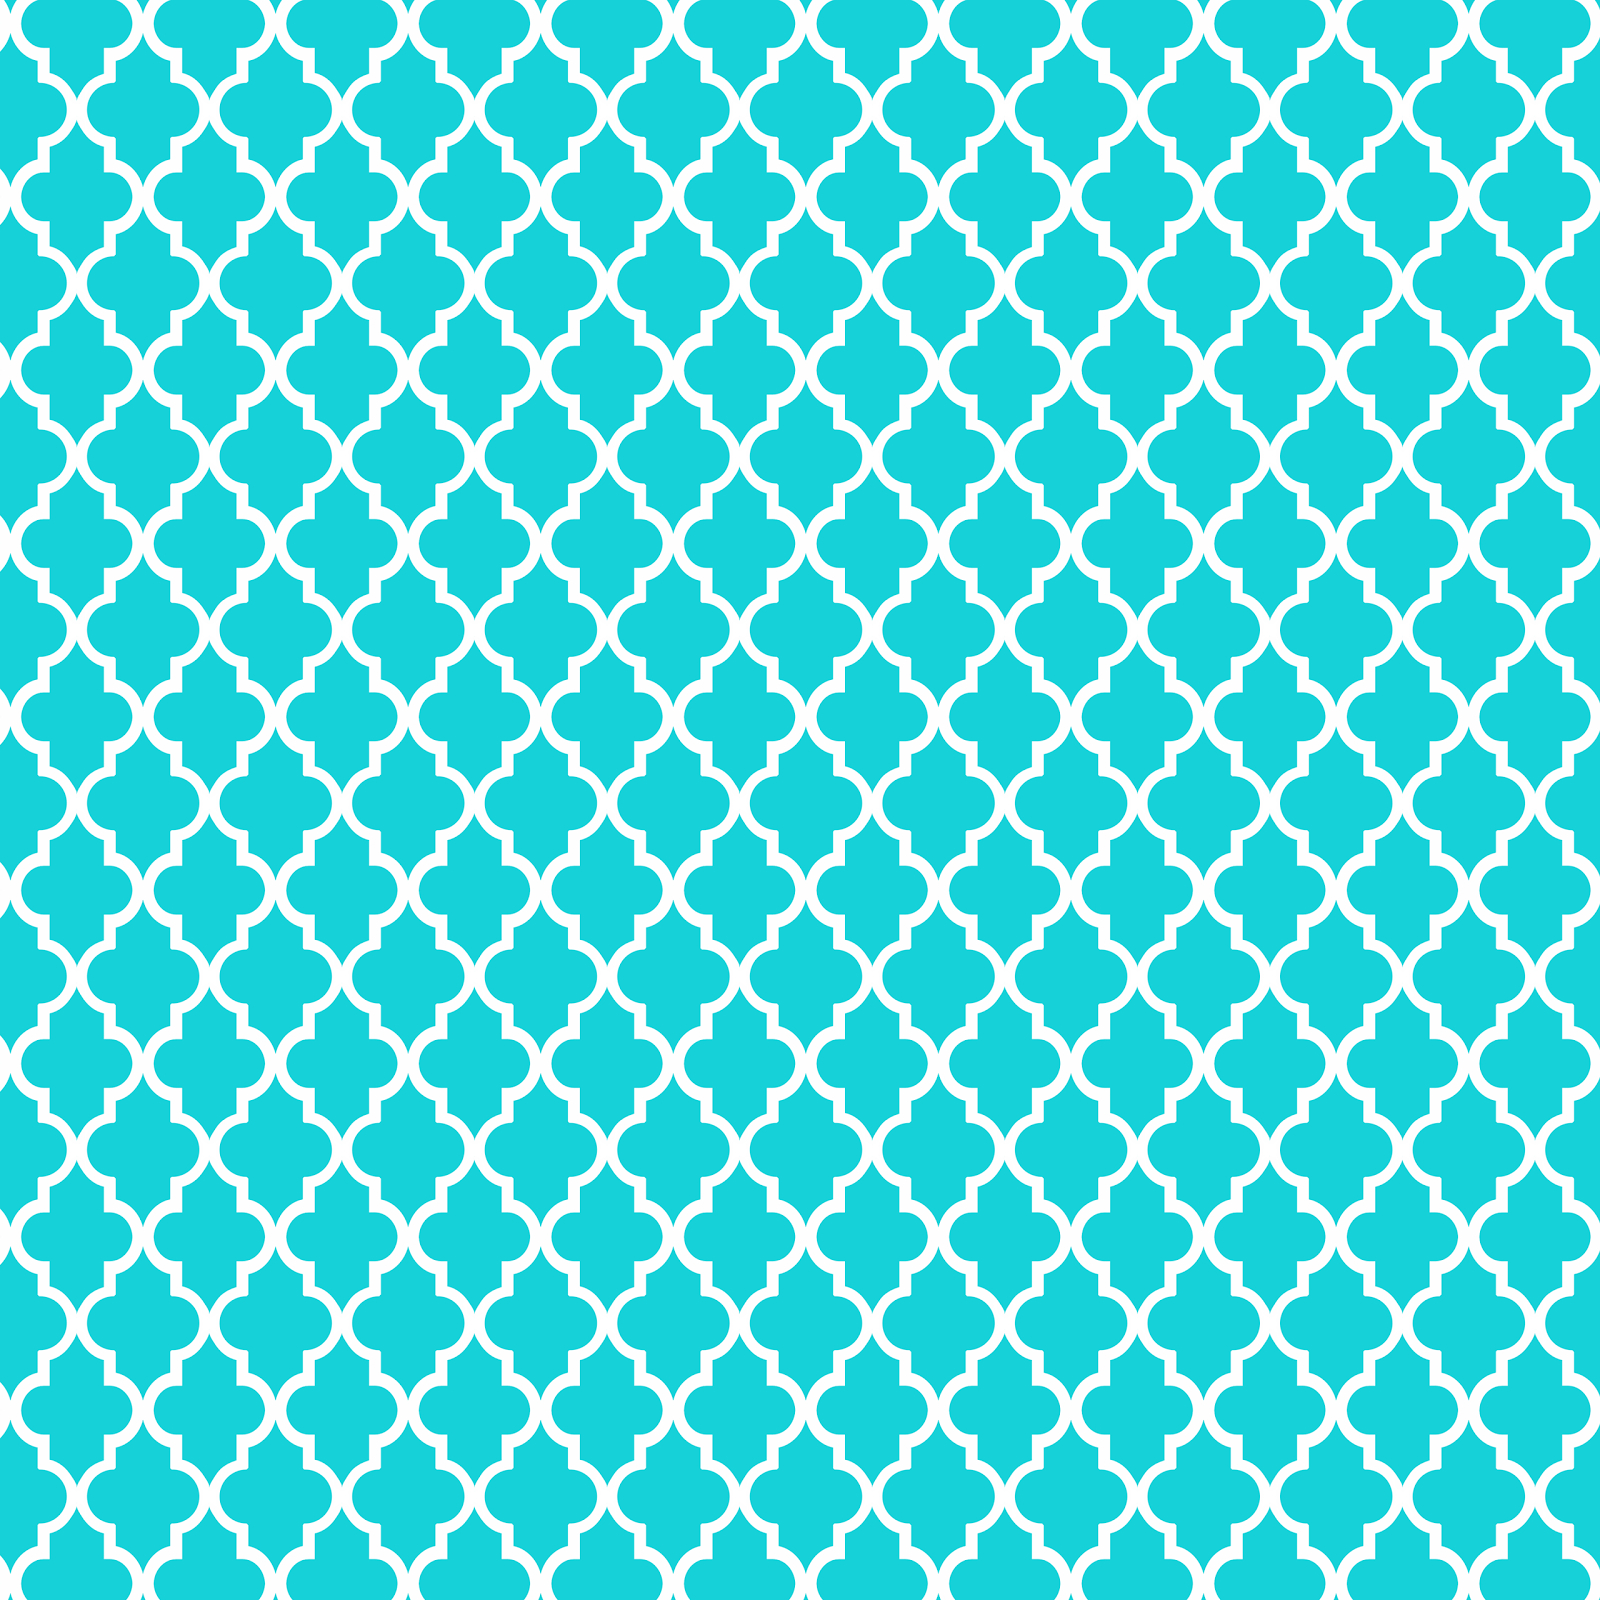 More Free Printable Patterns! - Free Printable Patterns